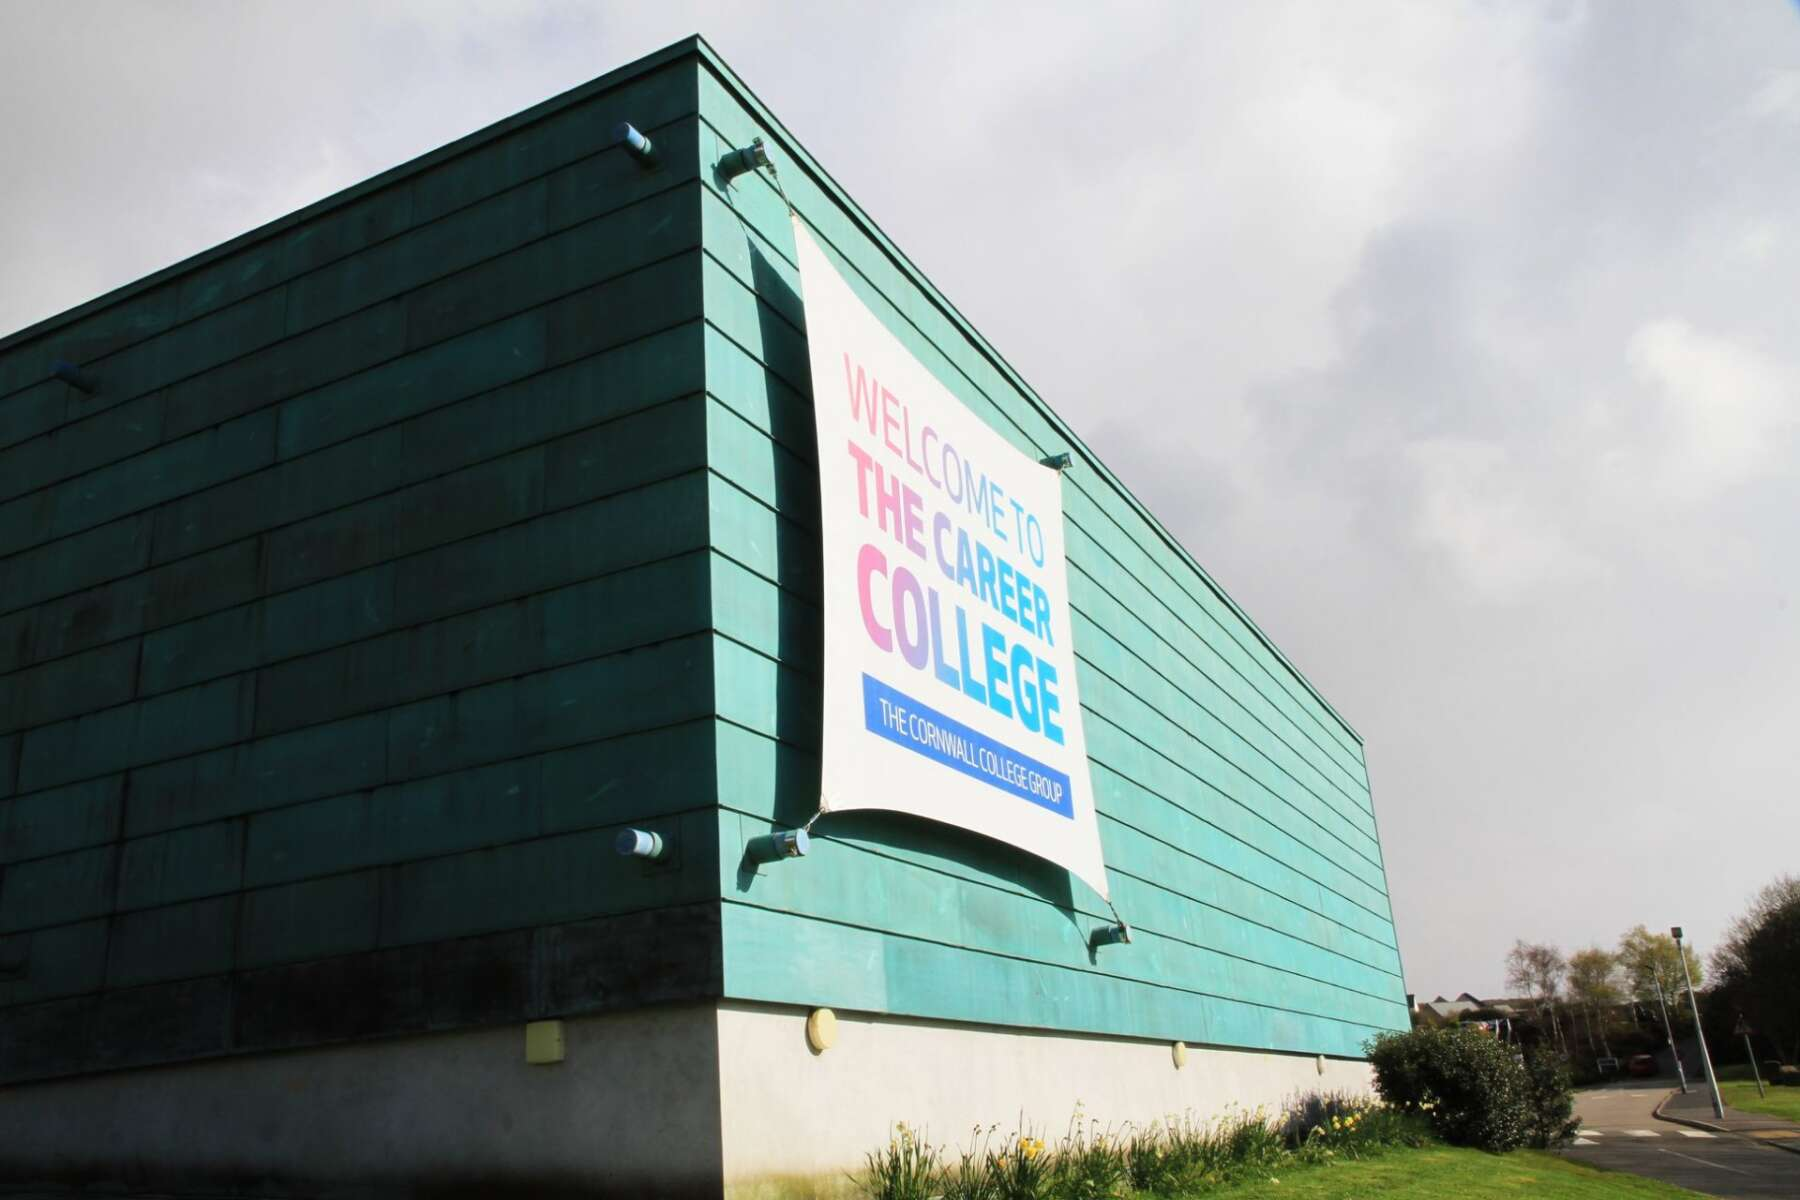 Cornwall College Building Exterior Shot